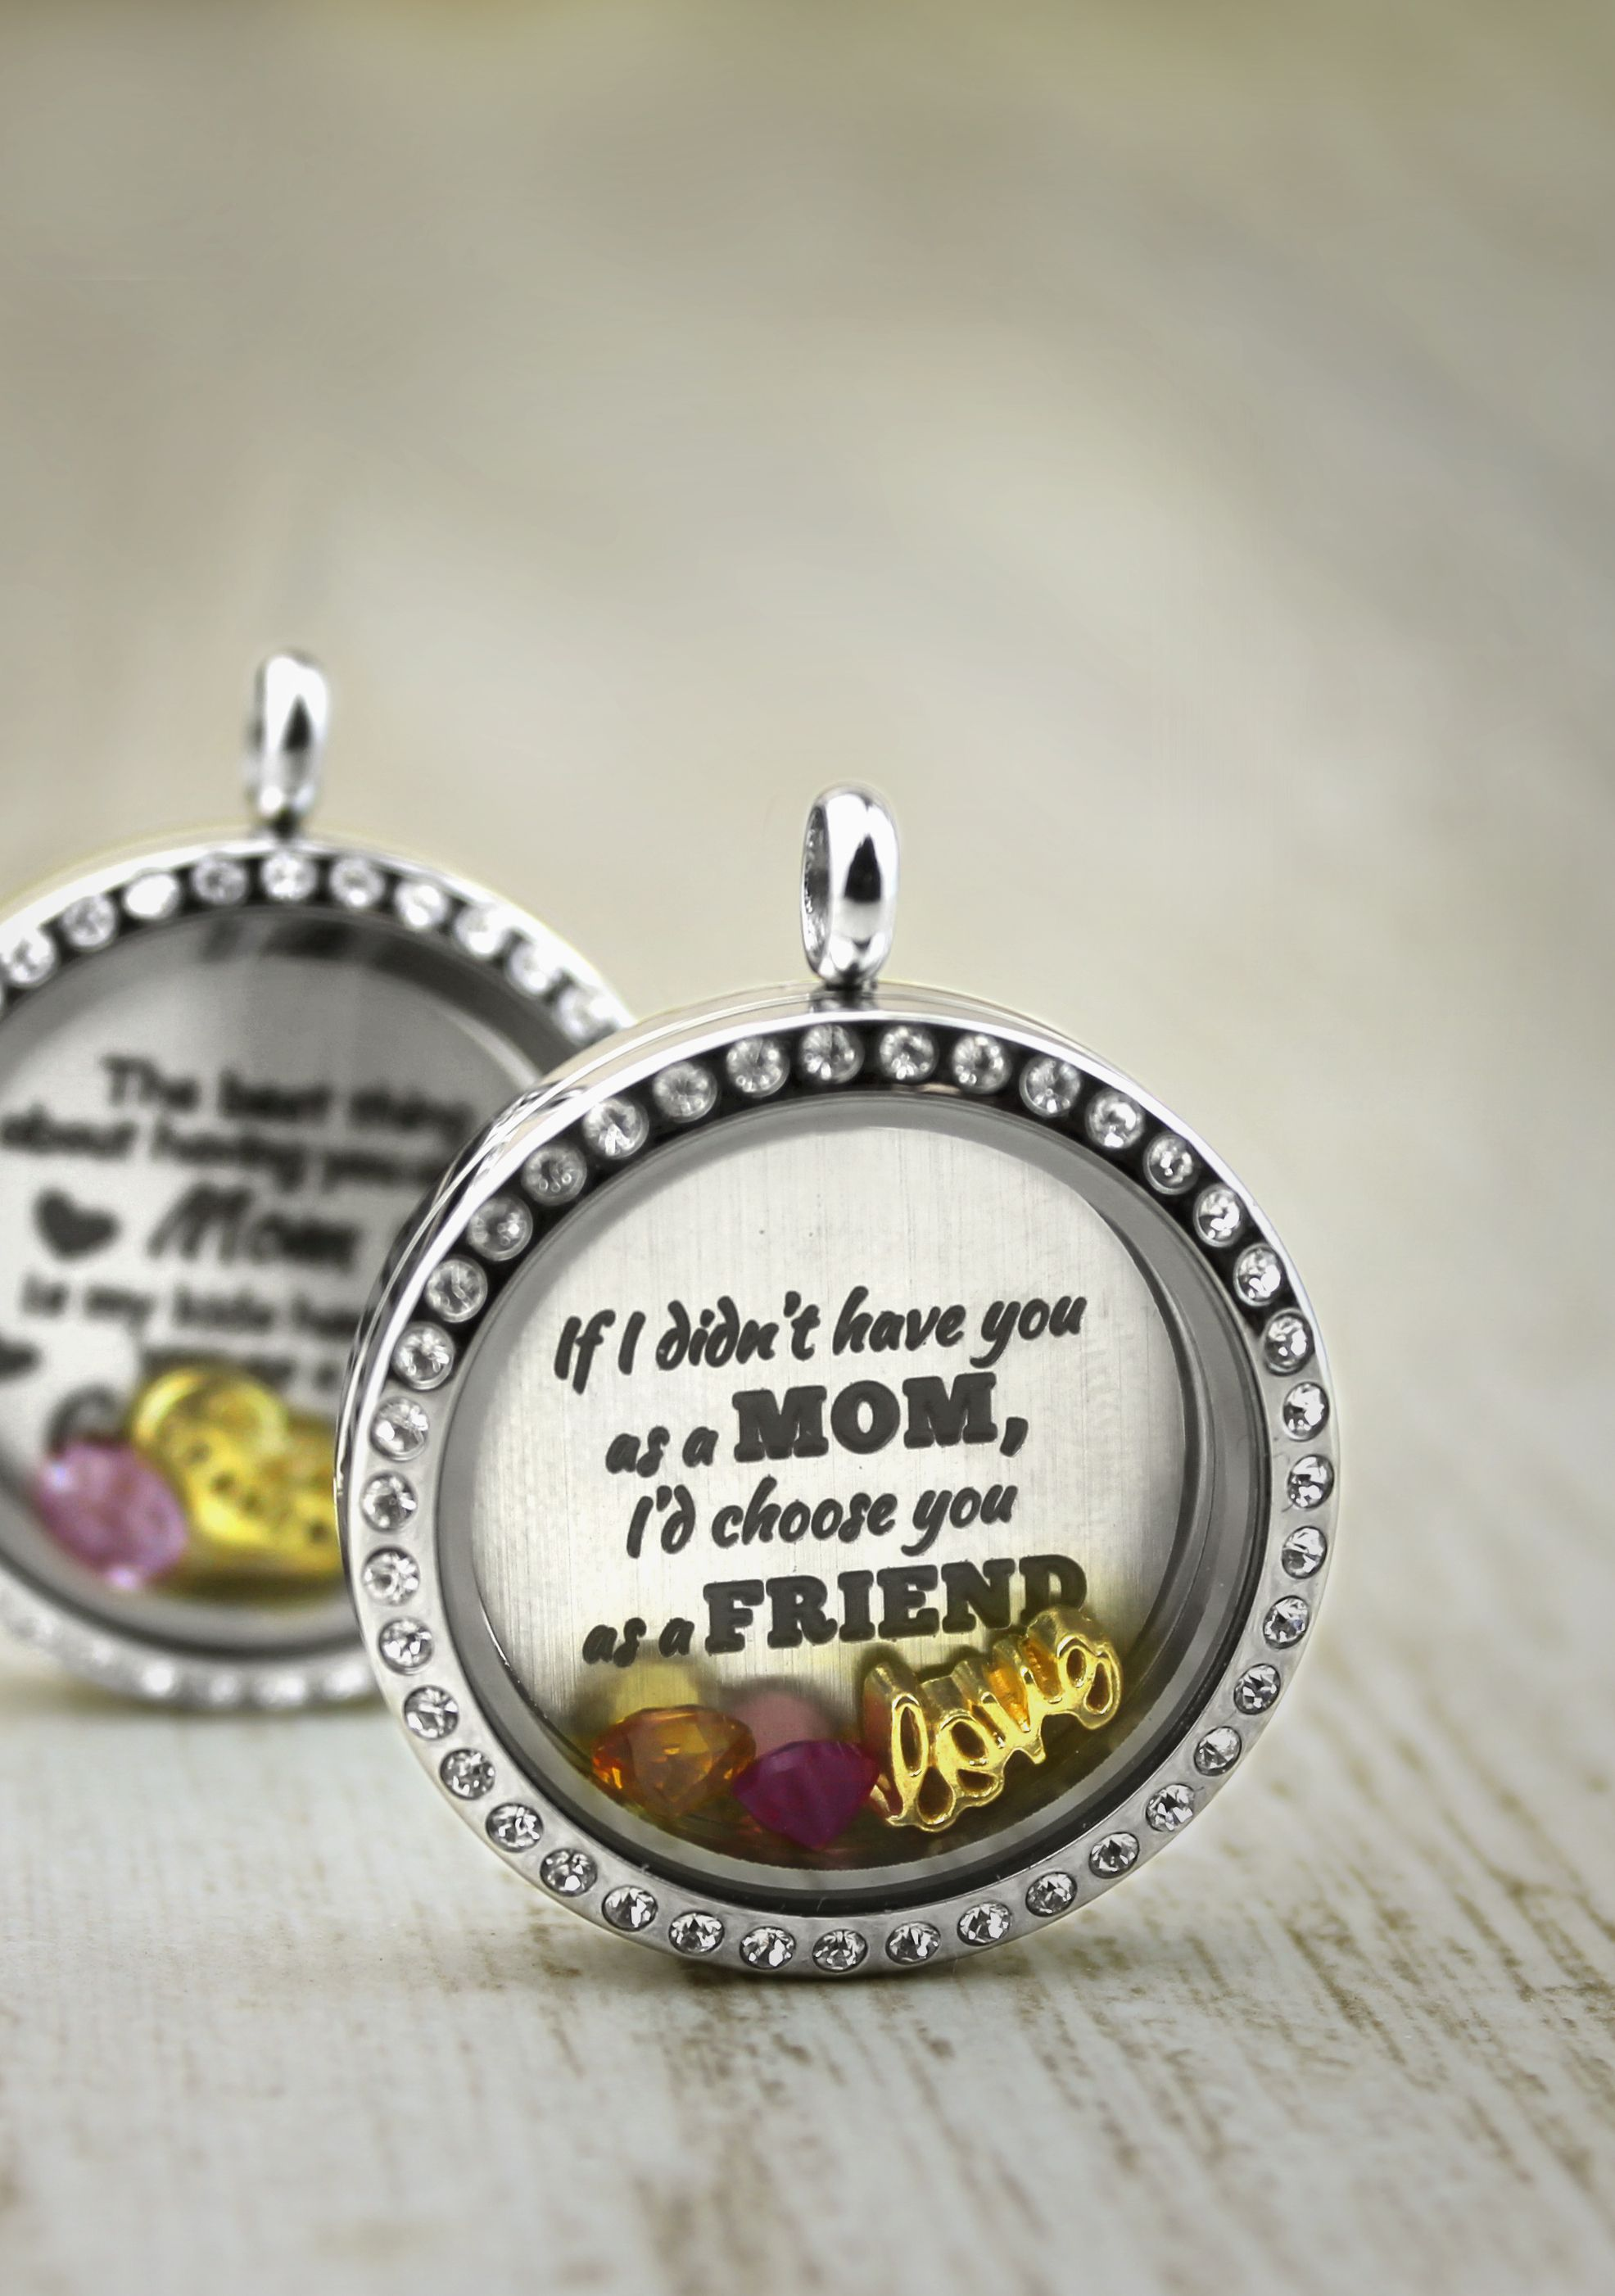 pin necklace lockets best friend friends story design themed locket your memory